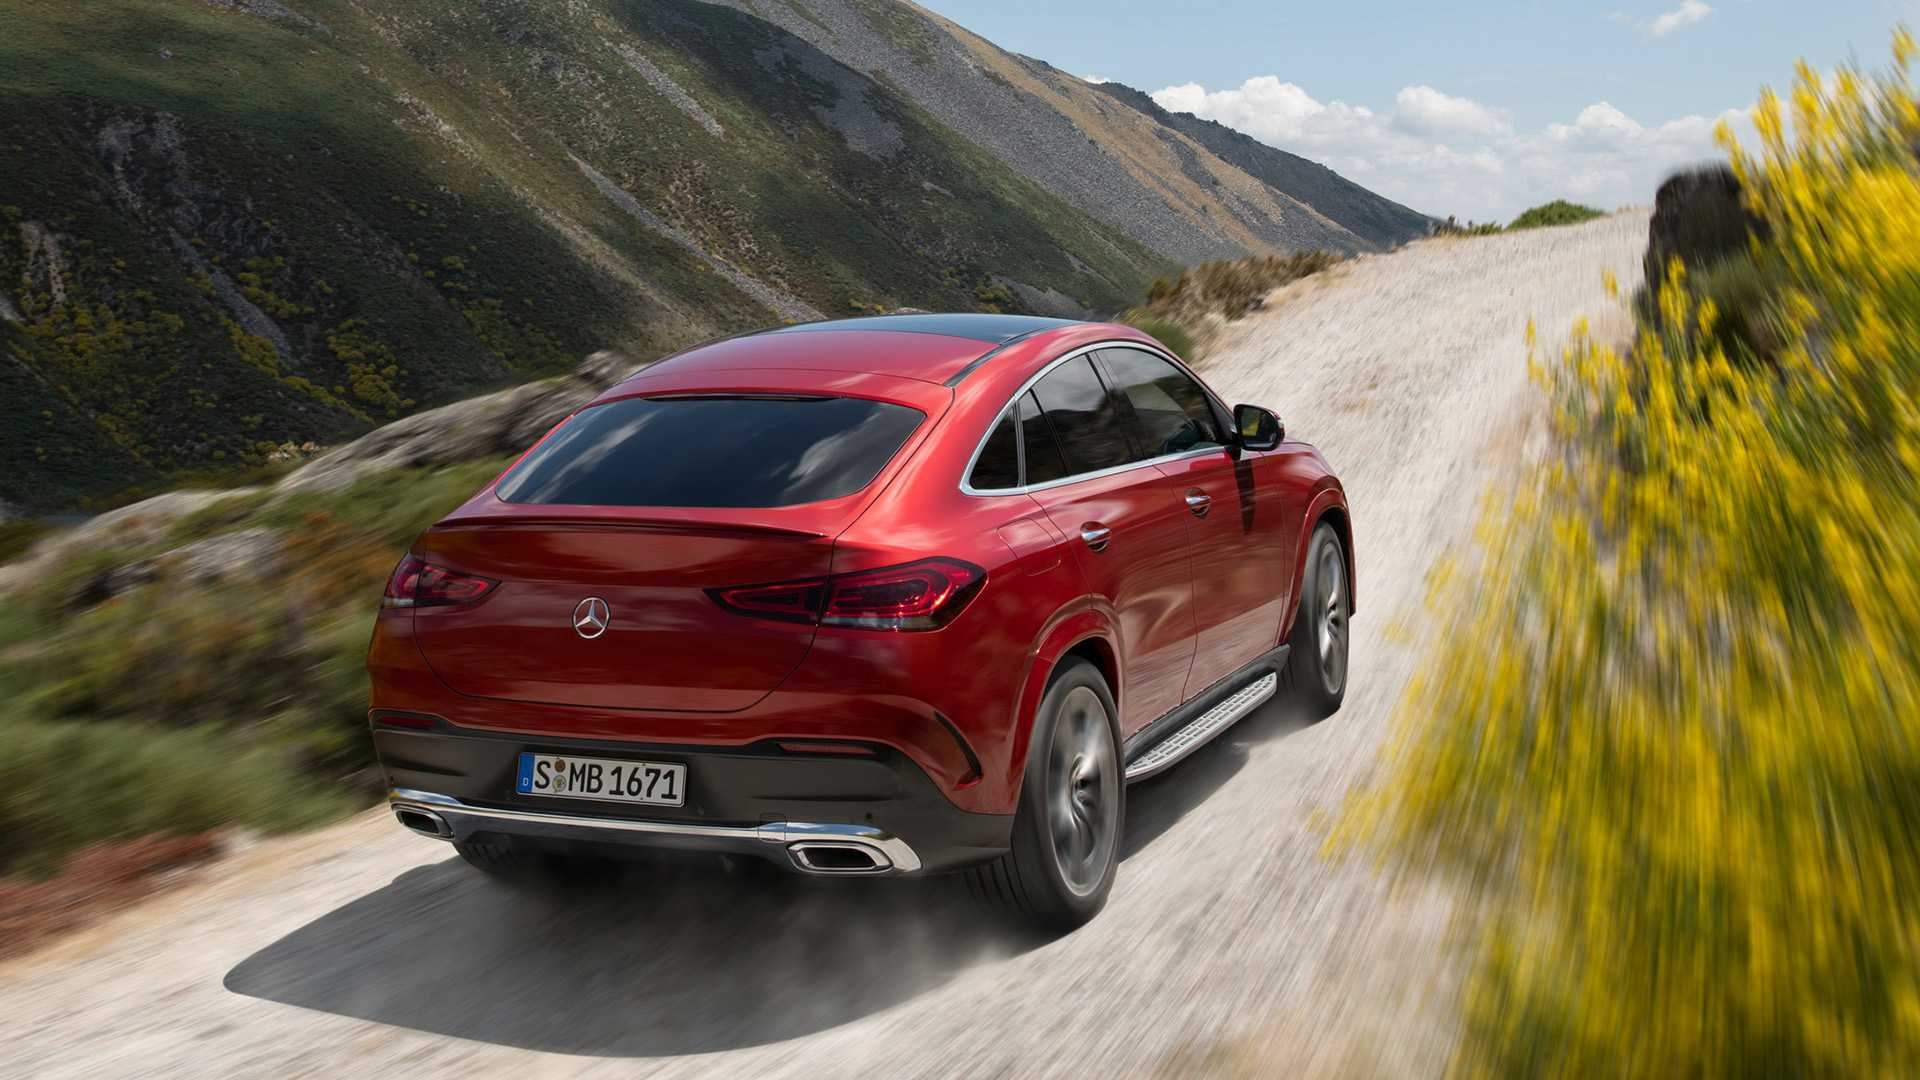 2021 Mercedes-Benz GLE Coupe (Color: Designo Hyacinth Red Metallic) Rear Three-Quarter Wallpapers (6)